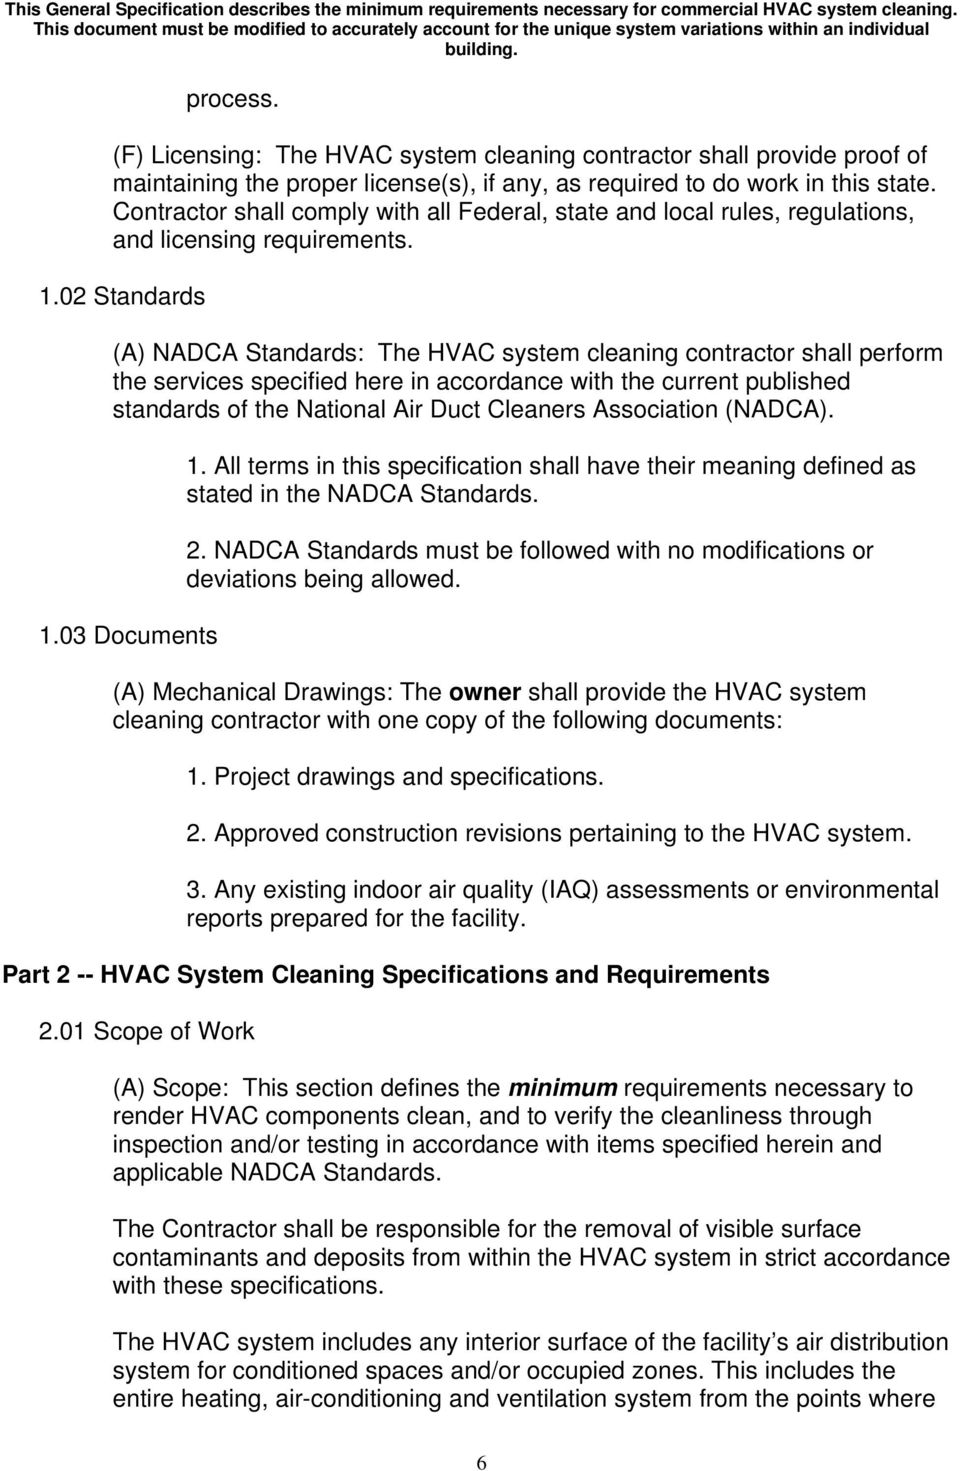 02 Standards (A) NADCA Standards: The HVAC system cleaning contractor shall perform the services specified here in accordance with the current published standards of the National Air Duct Cleaners